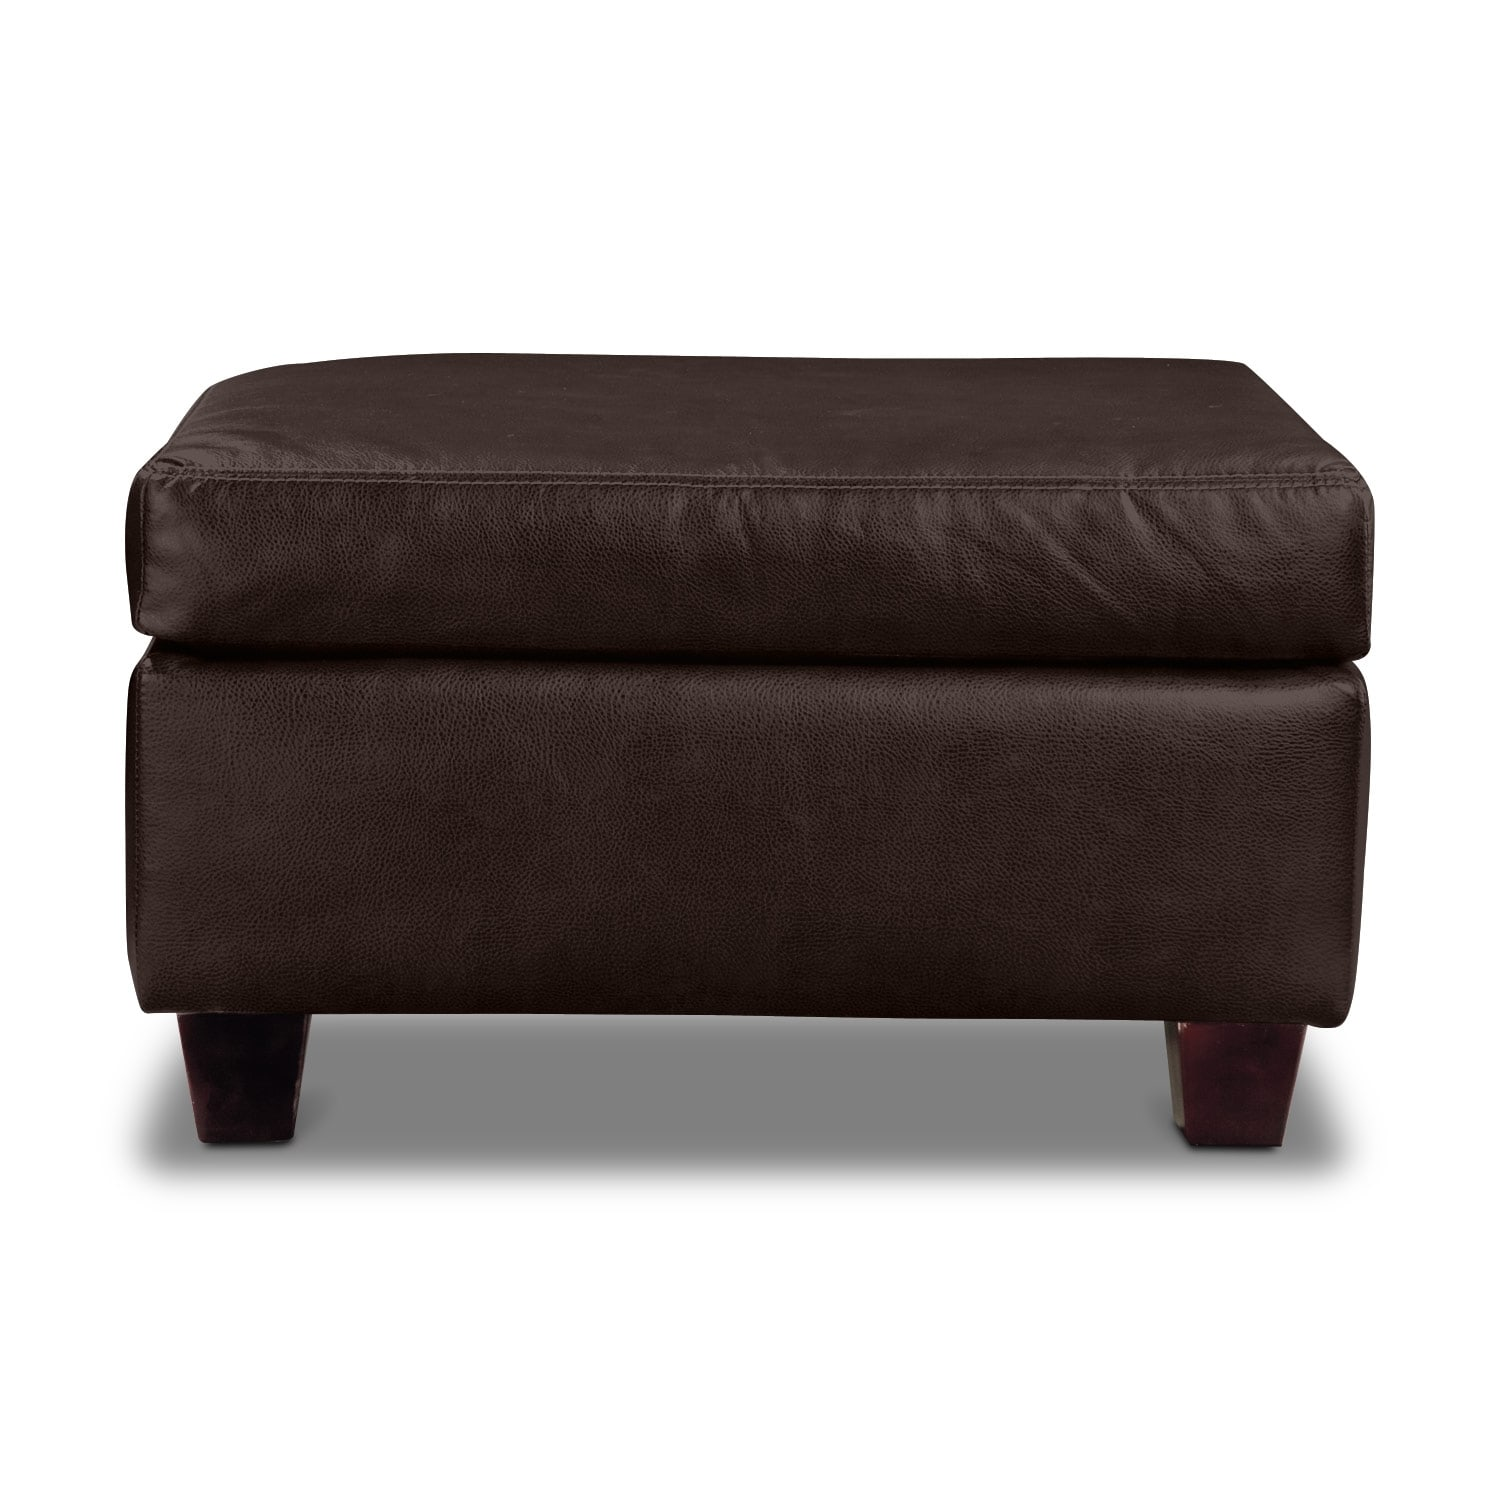 Living Room Furniture - Rialto Ottoman - Brown